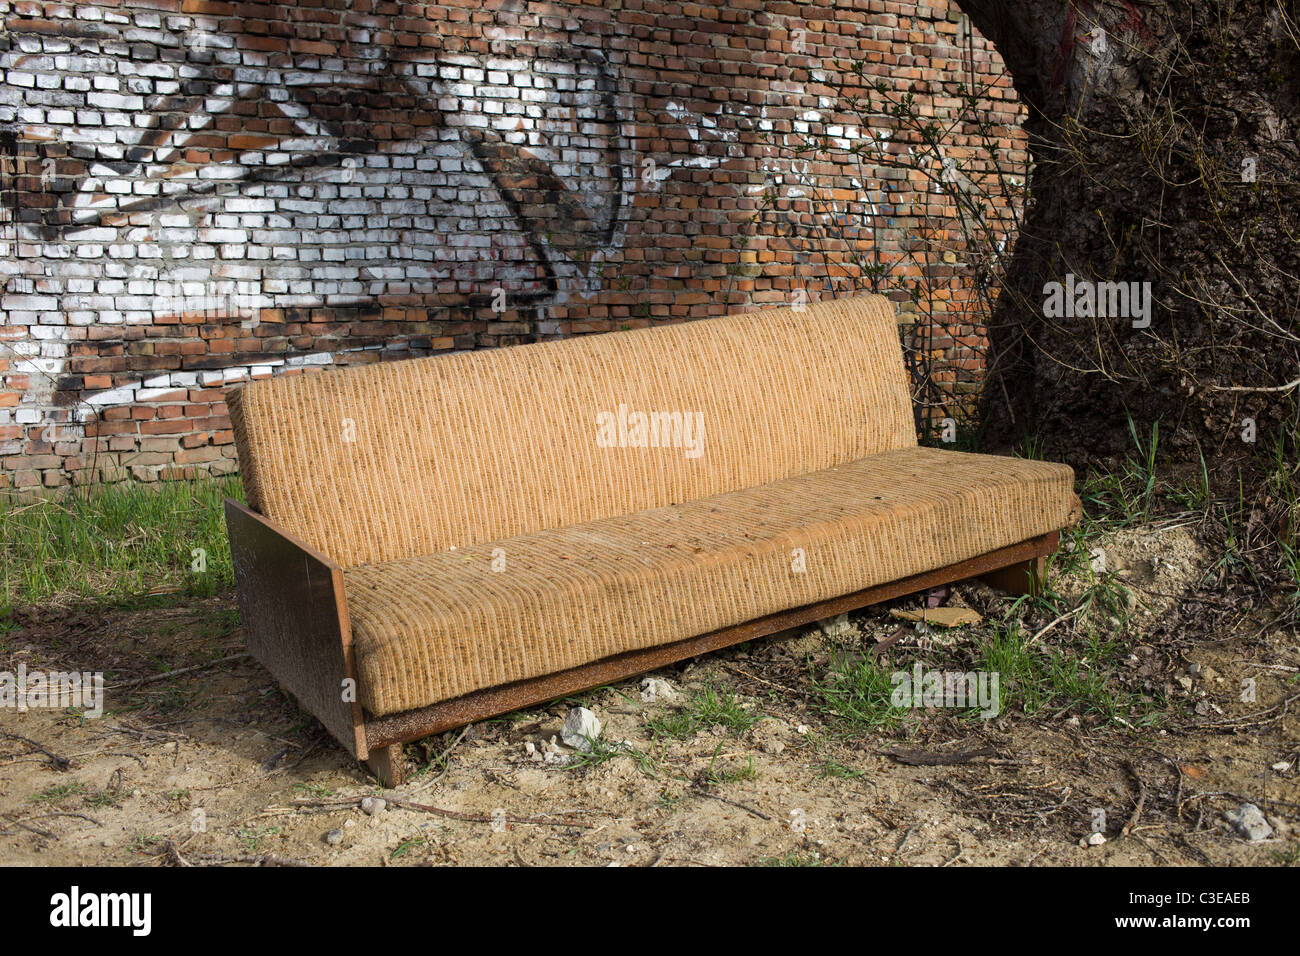 Dirty Old Couch In Abandoned Stockfotos & Dirty Old Couch In ...